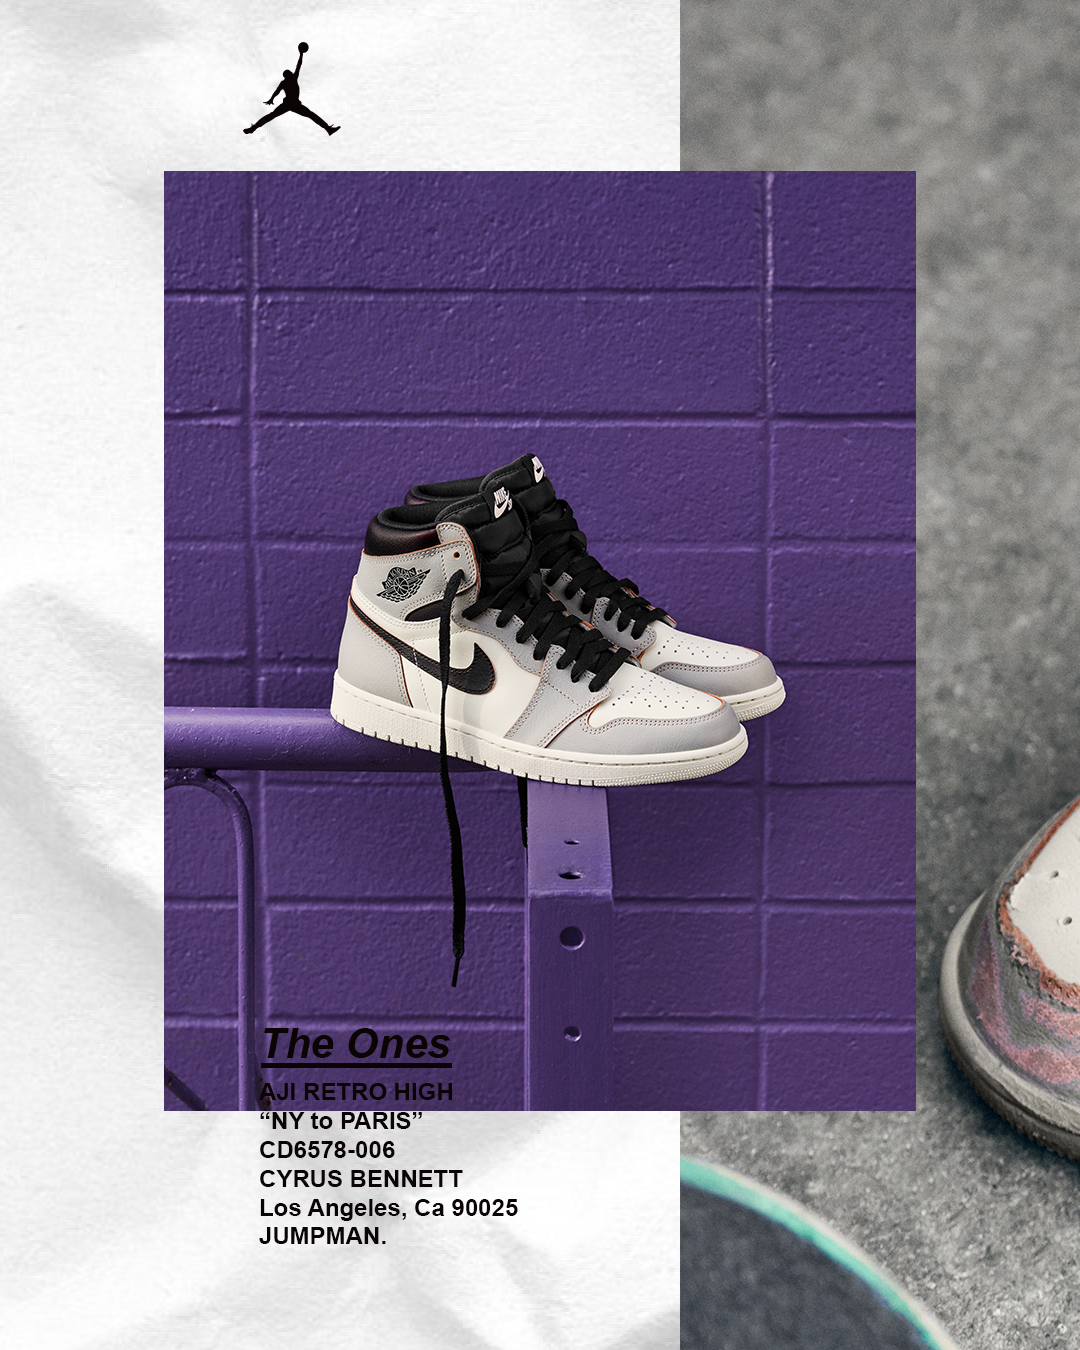 09928fb0 Paying homage to the history of the Air Jordan 1 in the skateboarding  culture, Nike SB and Jordan Brand collaborate on the Air Jordan 1 High  silhouette.